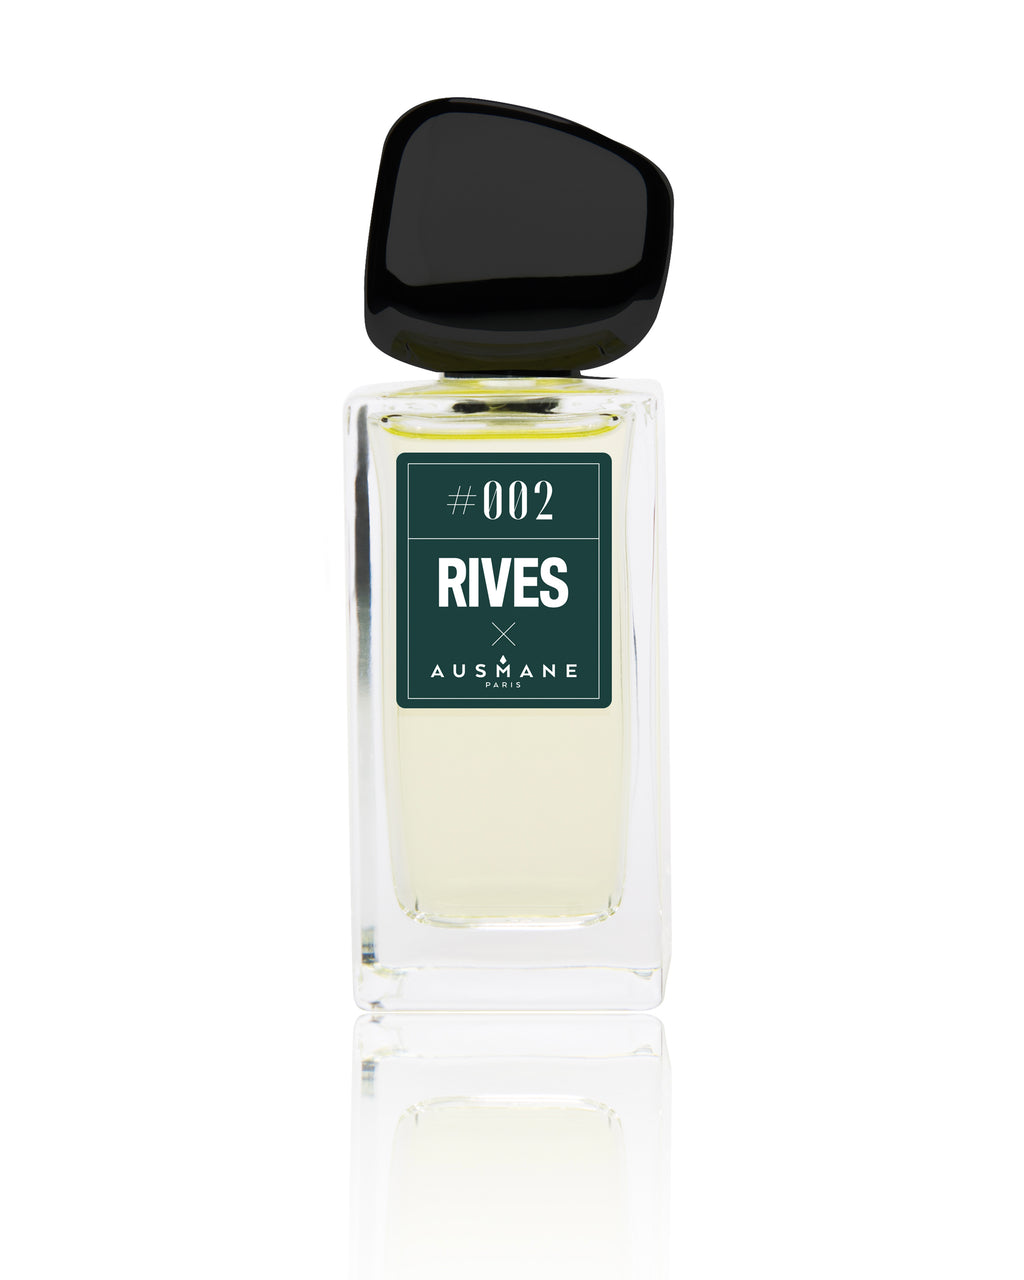 PARFUM RIVES x AUSMANE #002